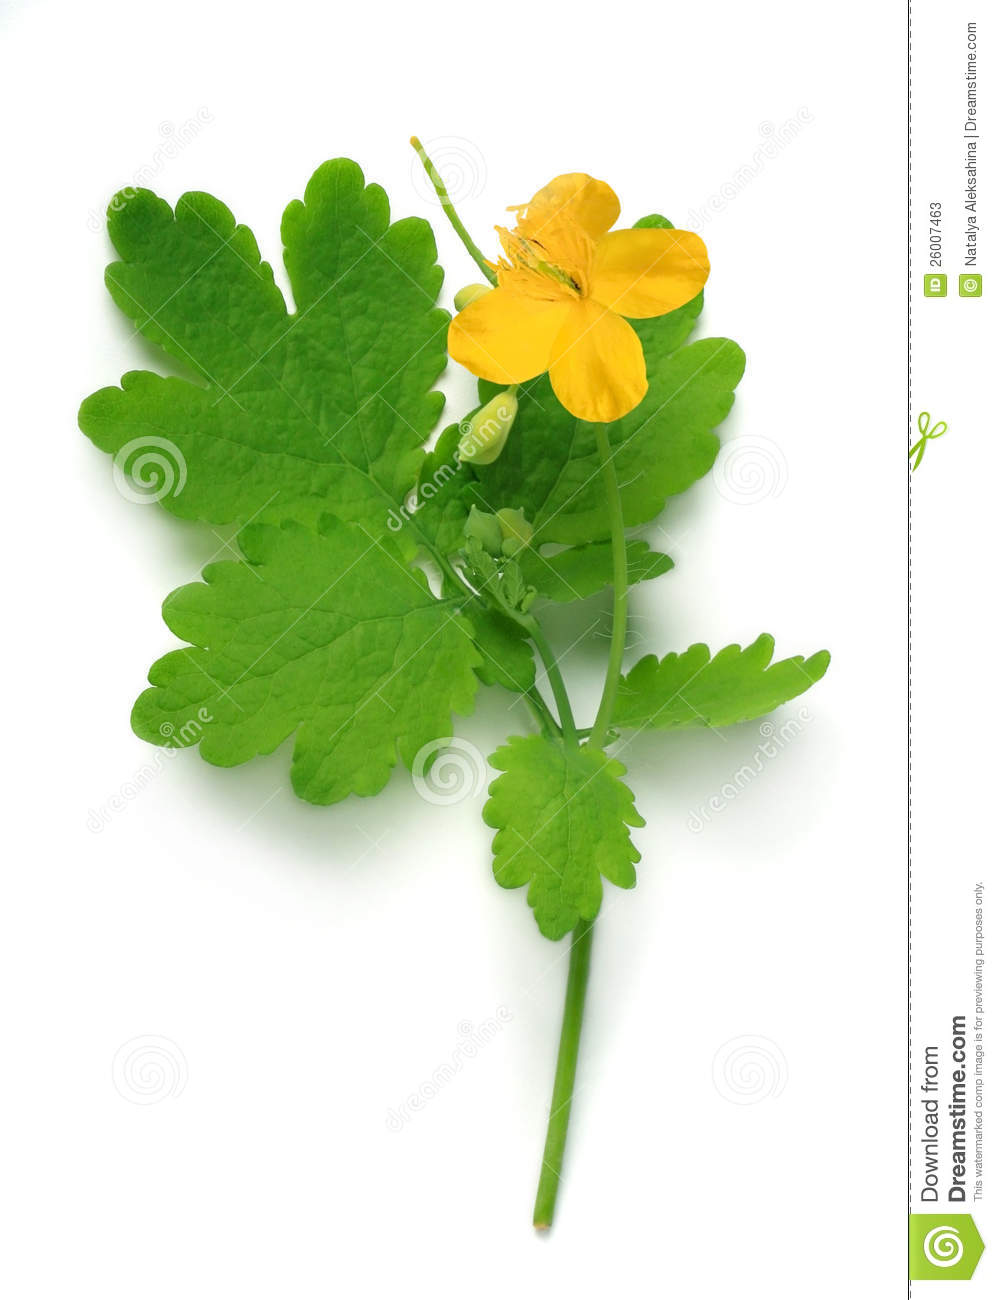 Chelidonium (greater Celandine) Flower And Leaf Stock Photos.